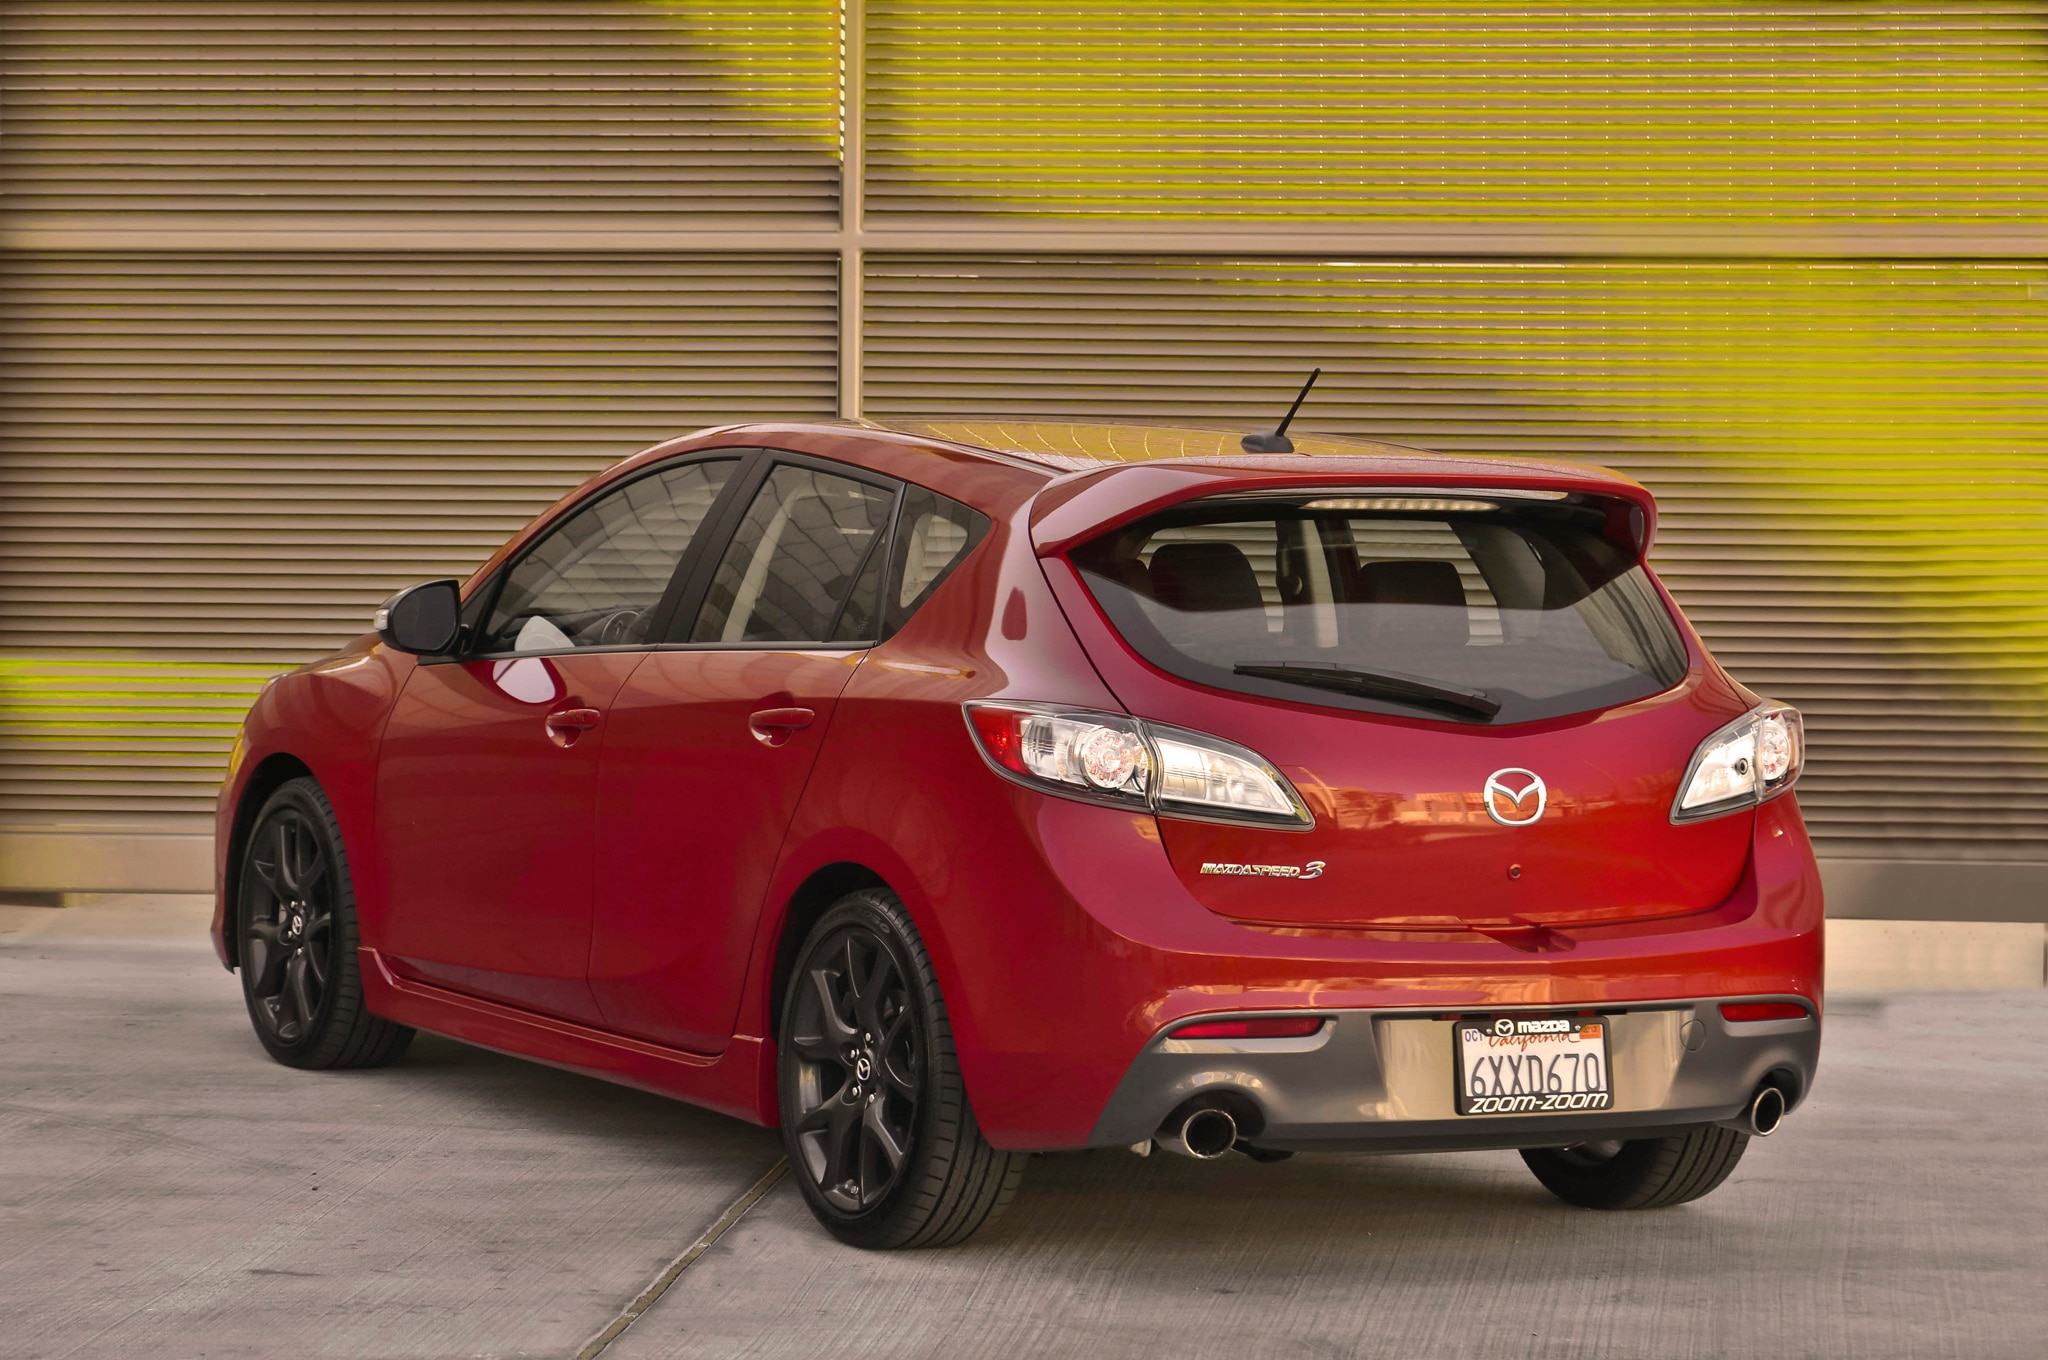 To Cope With All This Power, This Report Says That The Mazdaspeed 3 ...